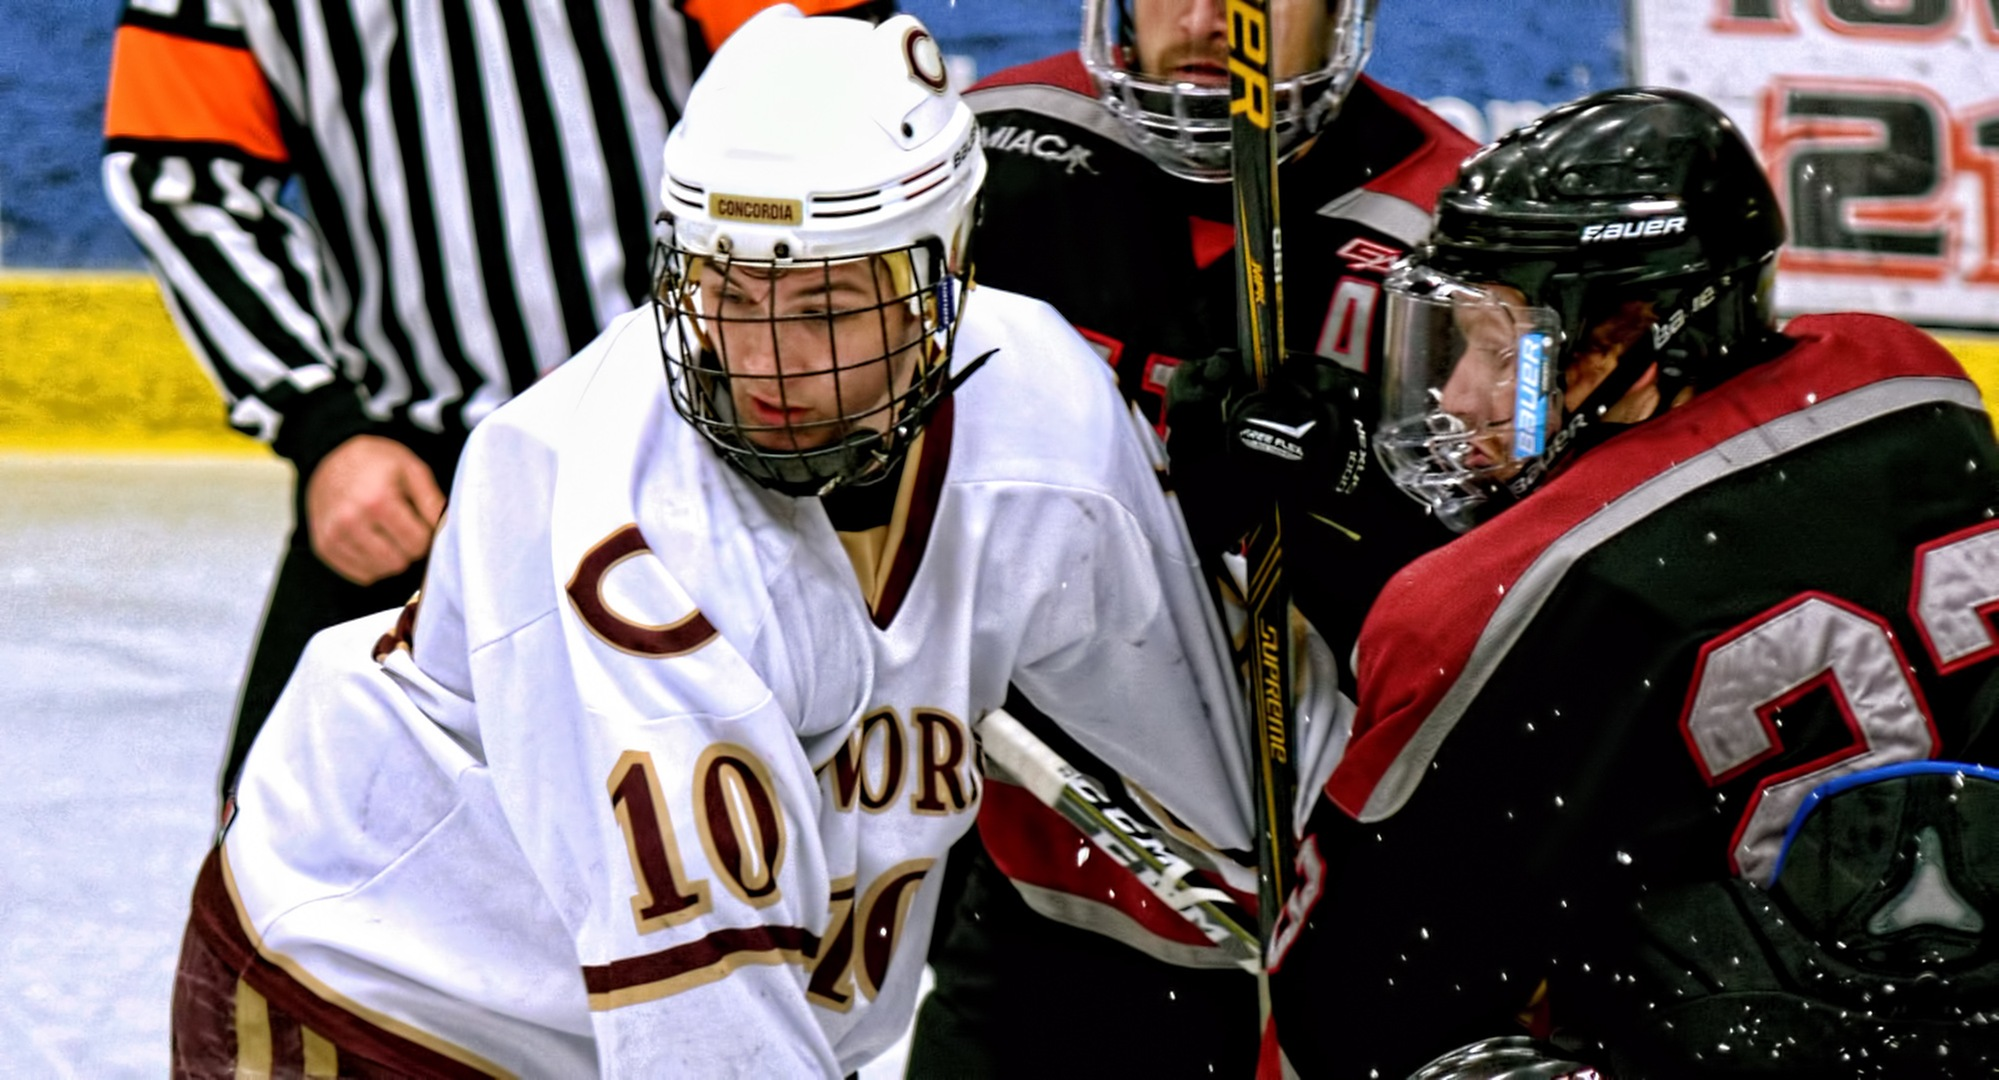 Senior captain Zach Doerring scored his second goal in as many games in the Cobbers' game with Augsburg.